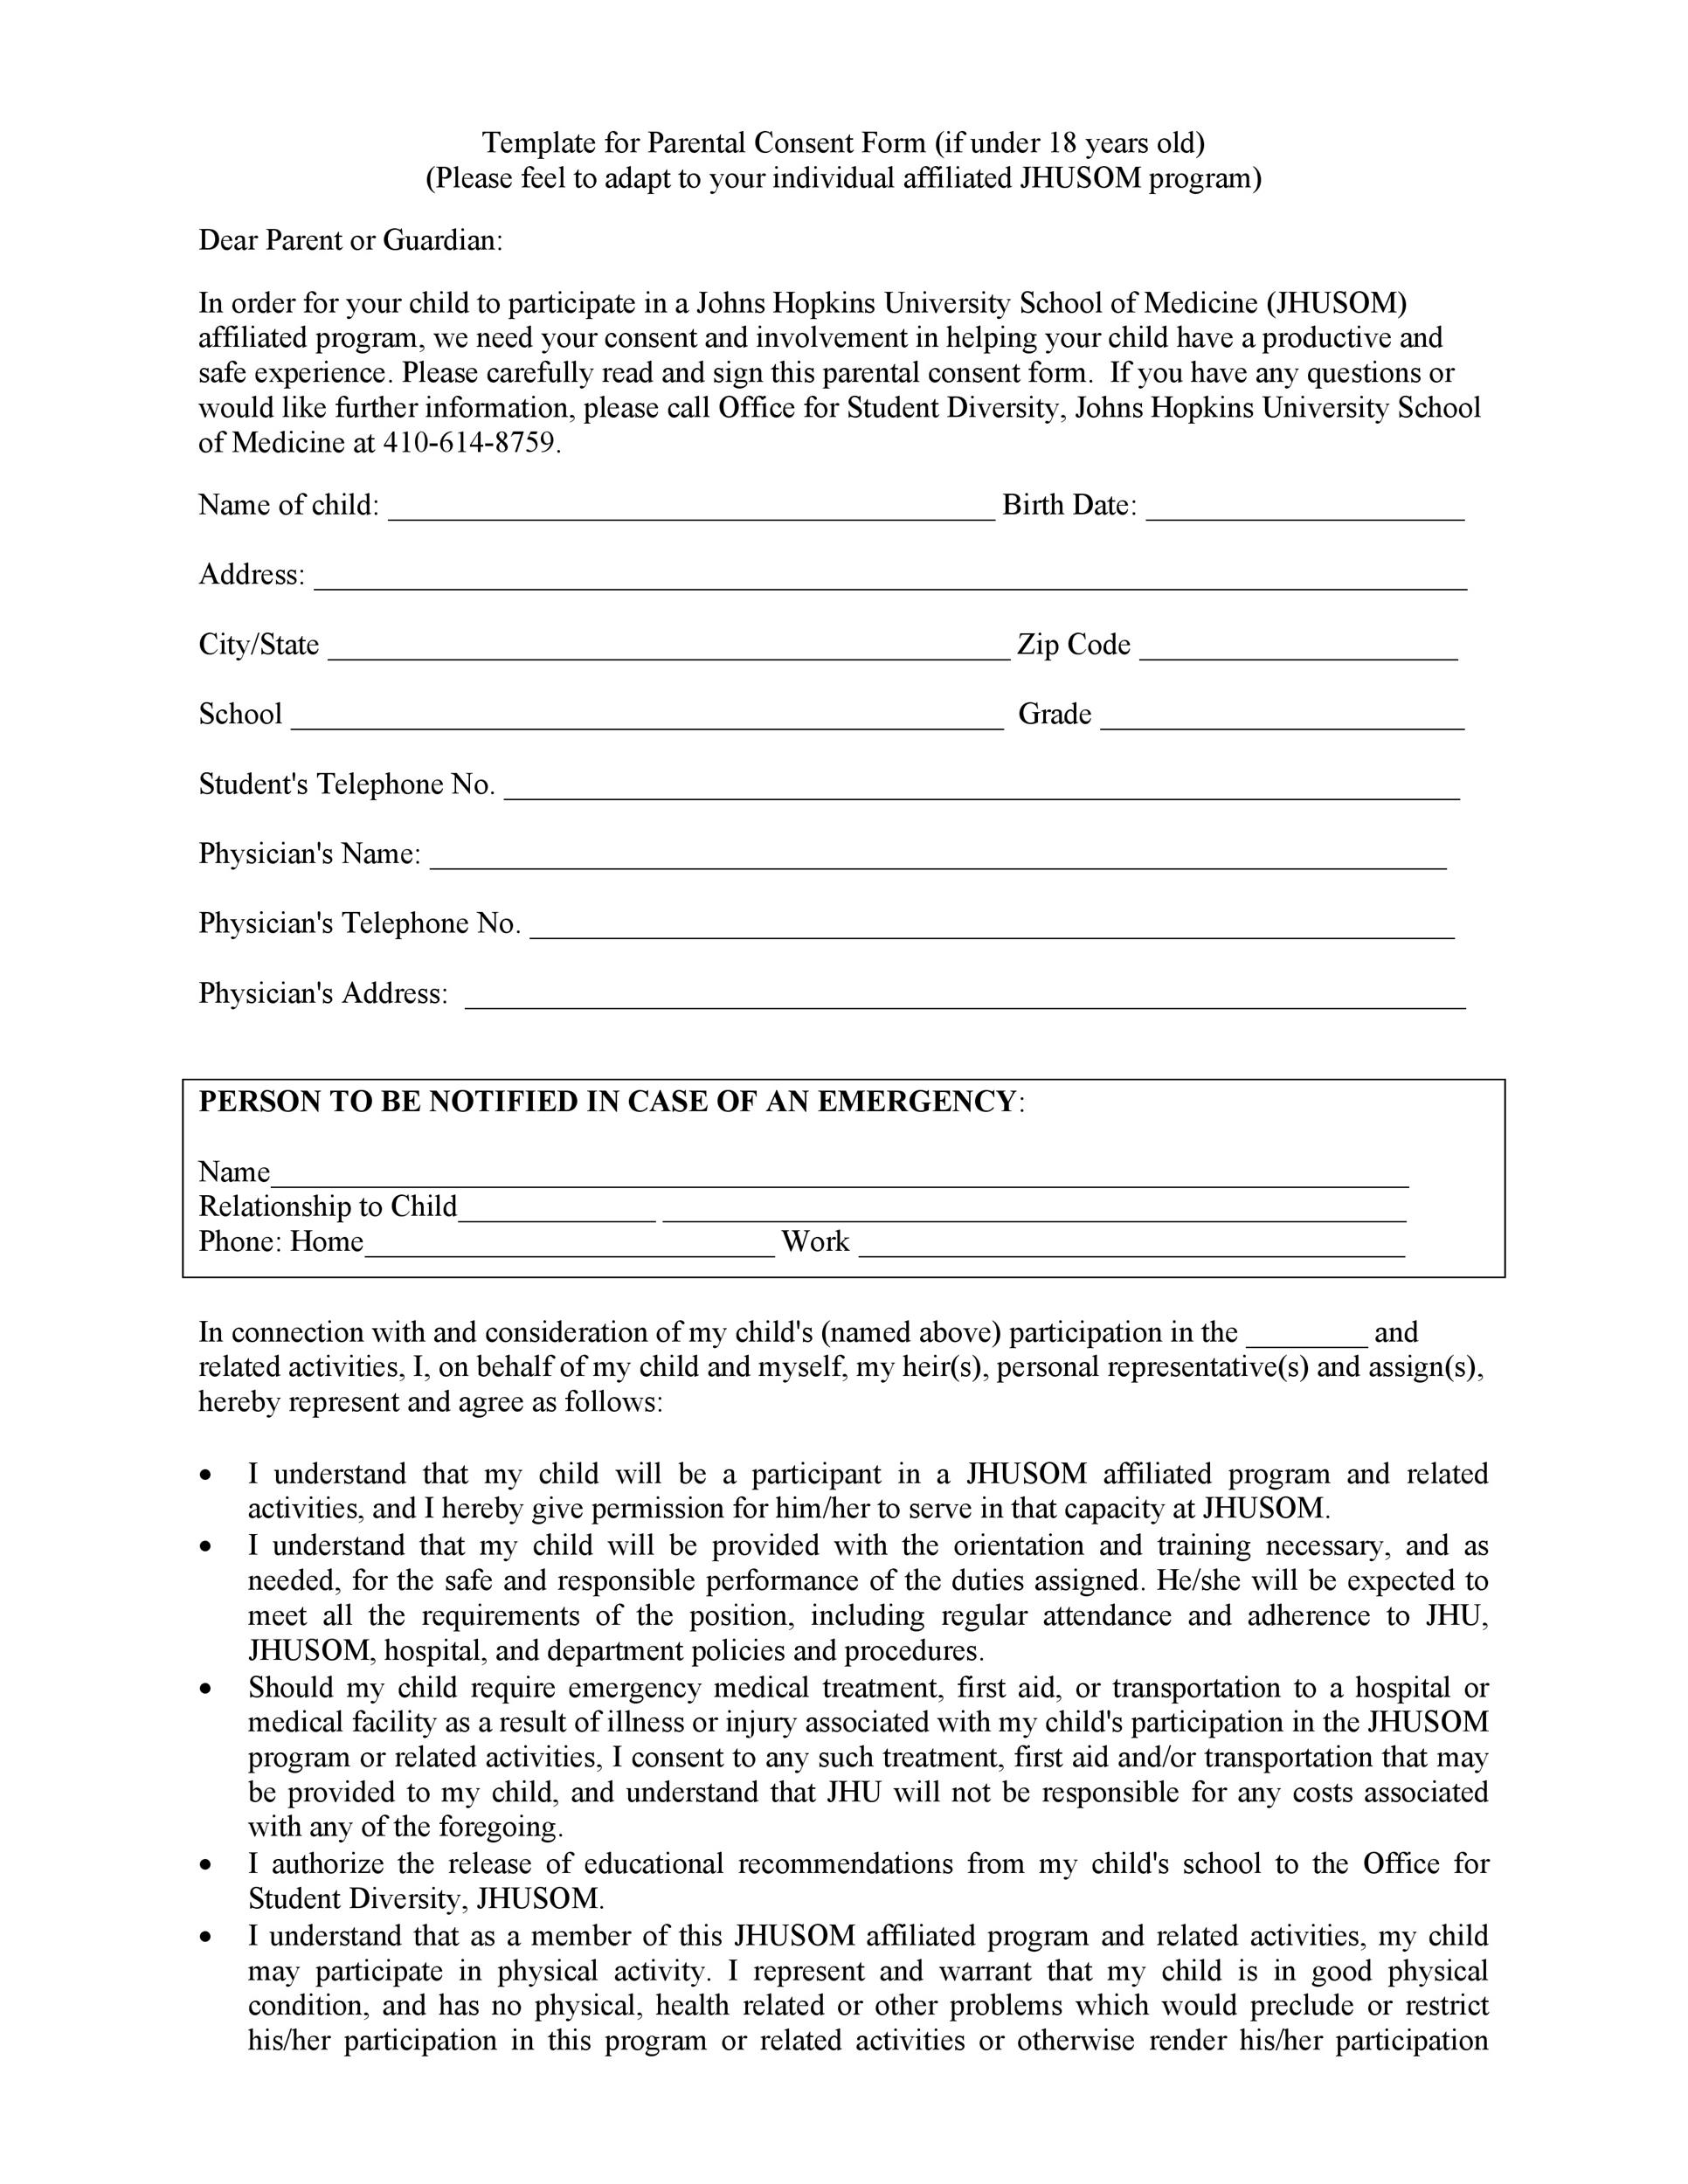 Free parental consent form template 39